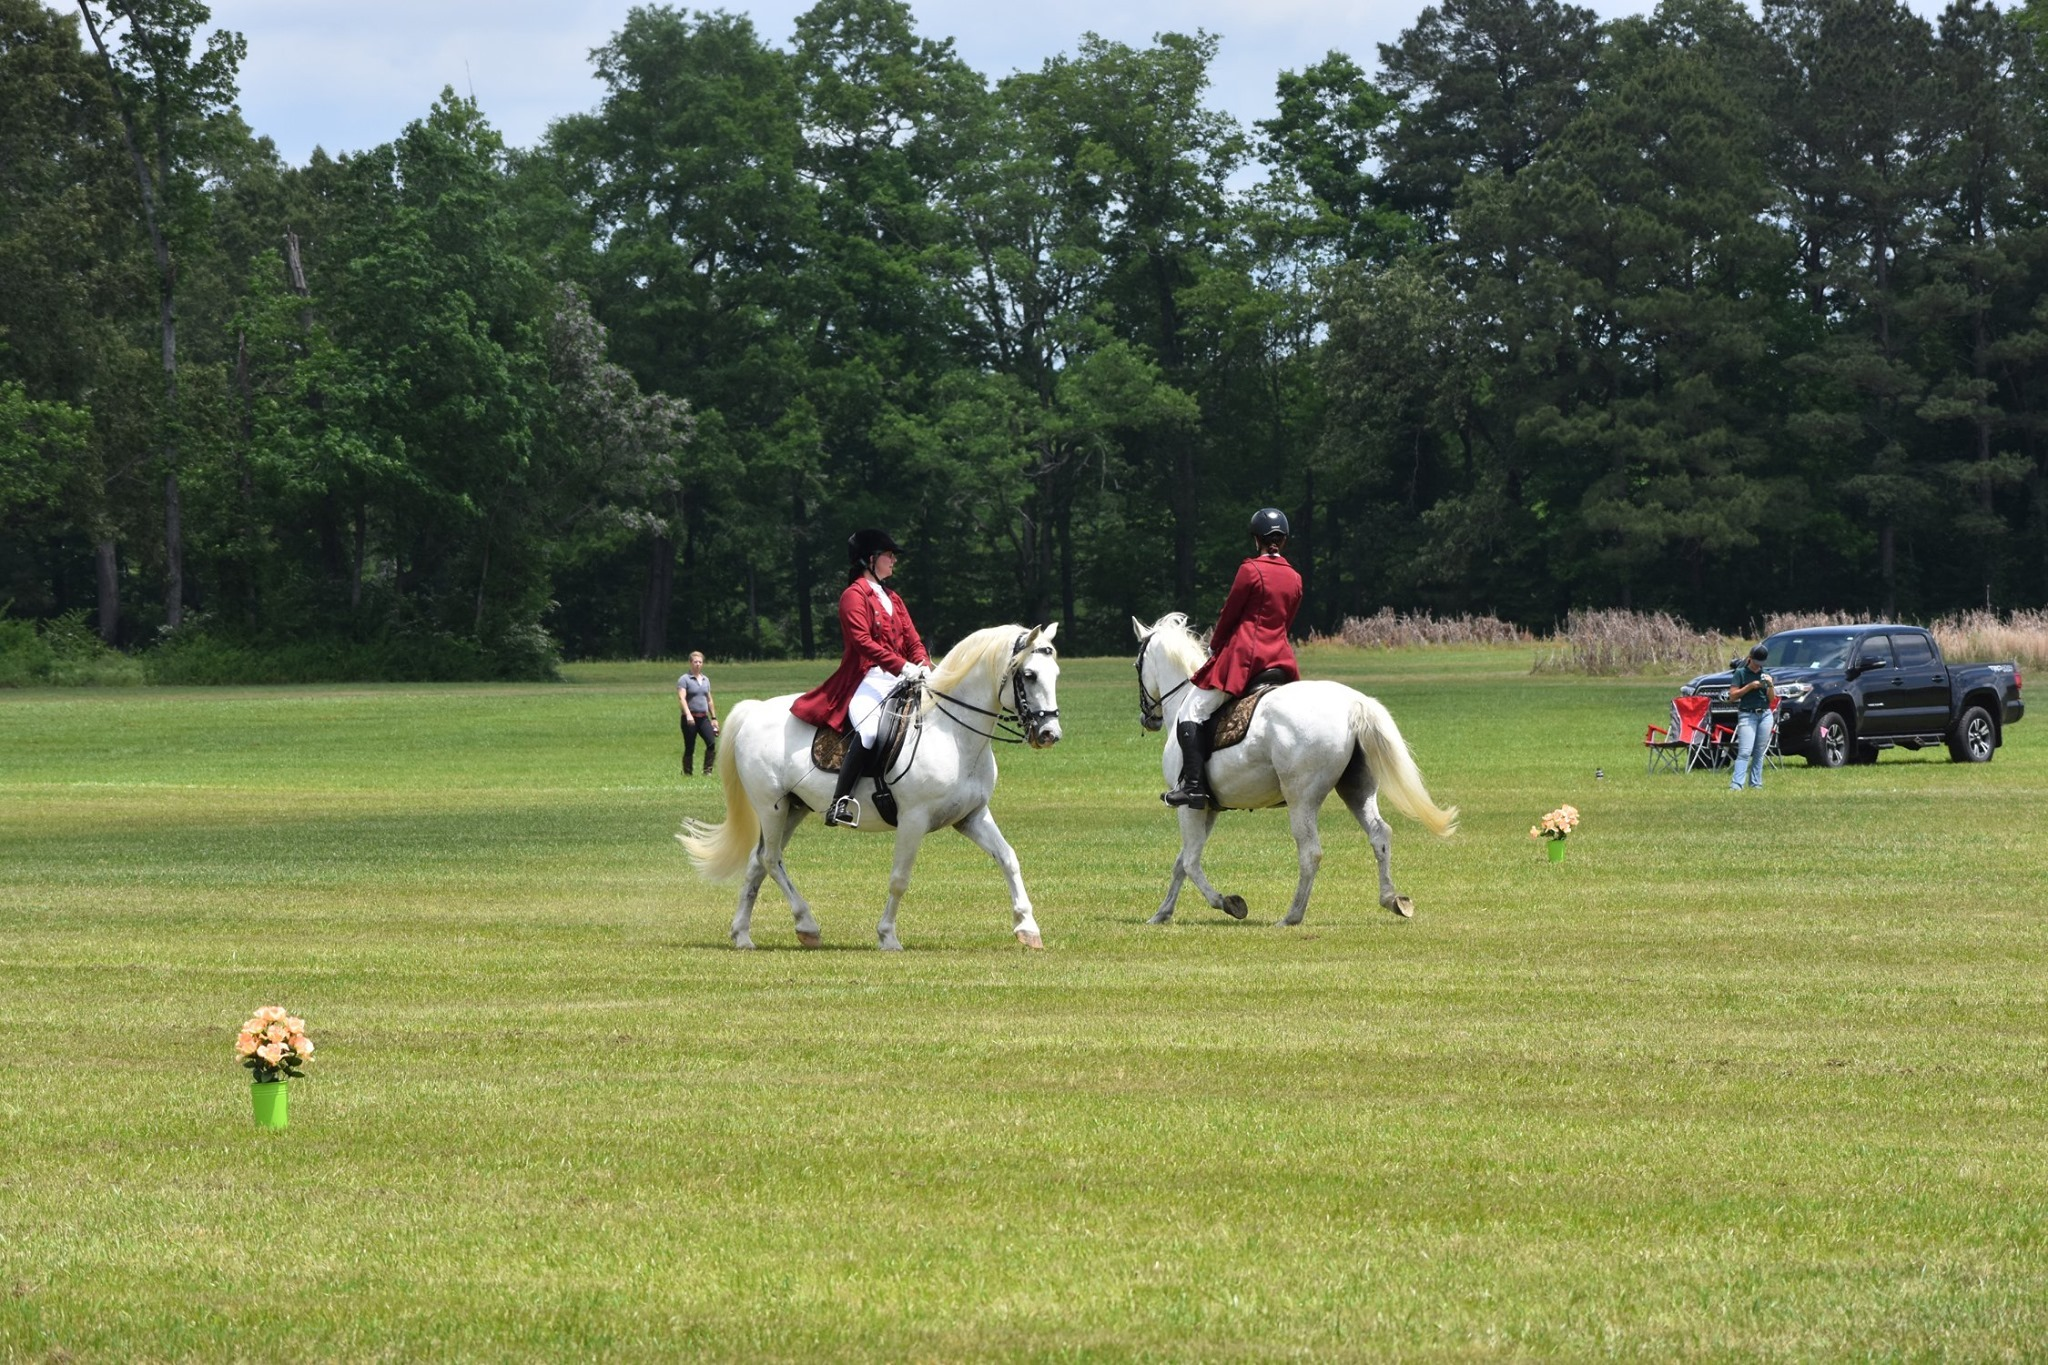 Lipizzan horses and riders perform at spring event